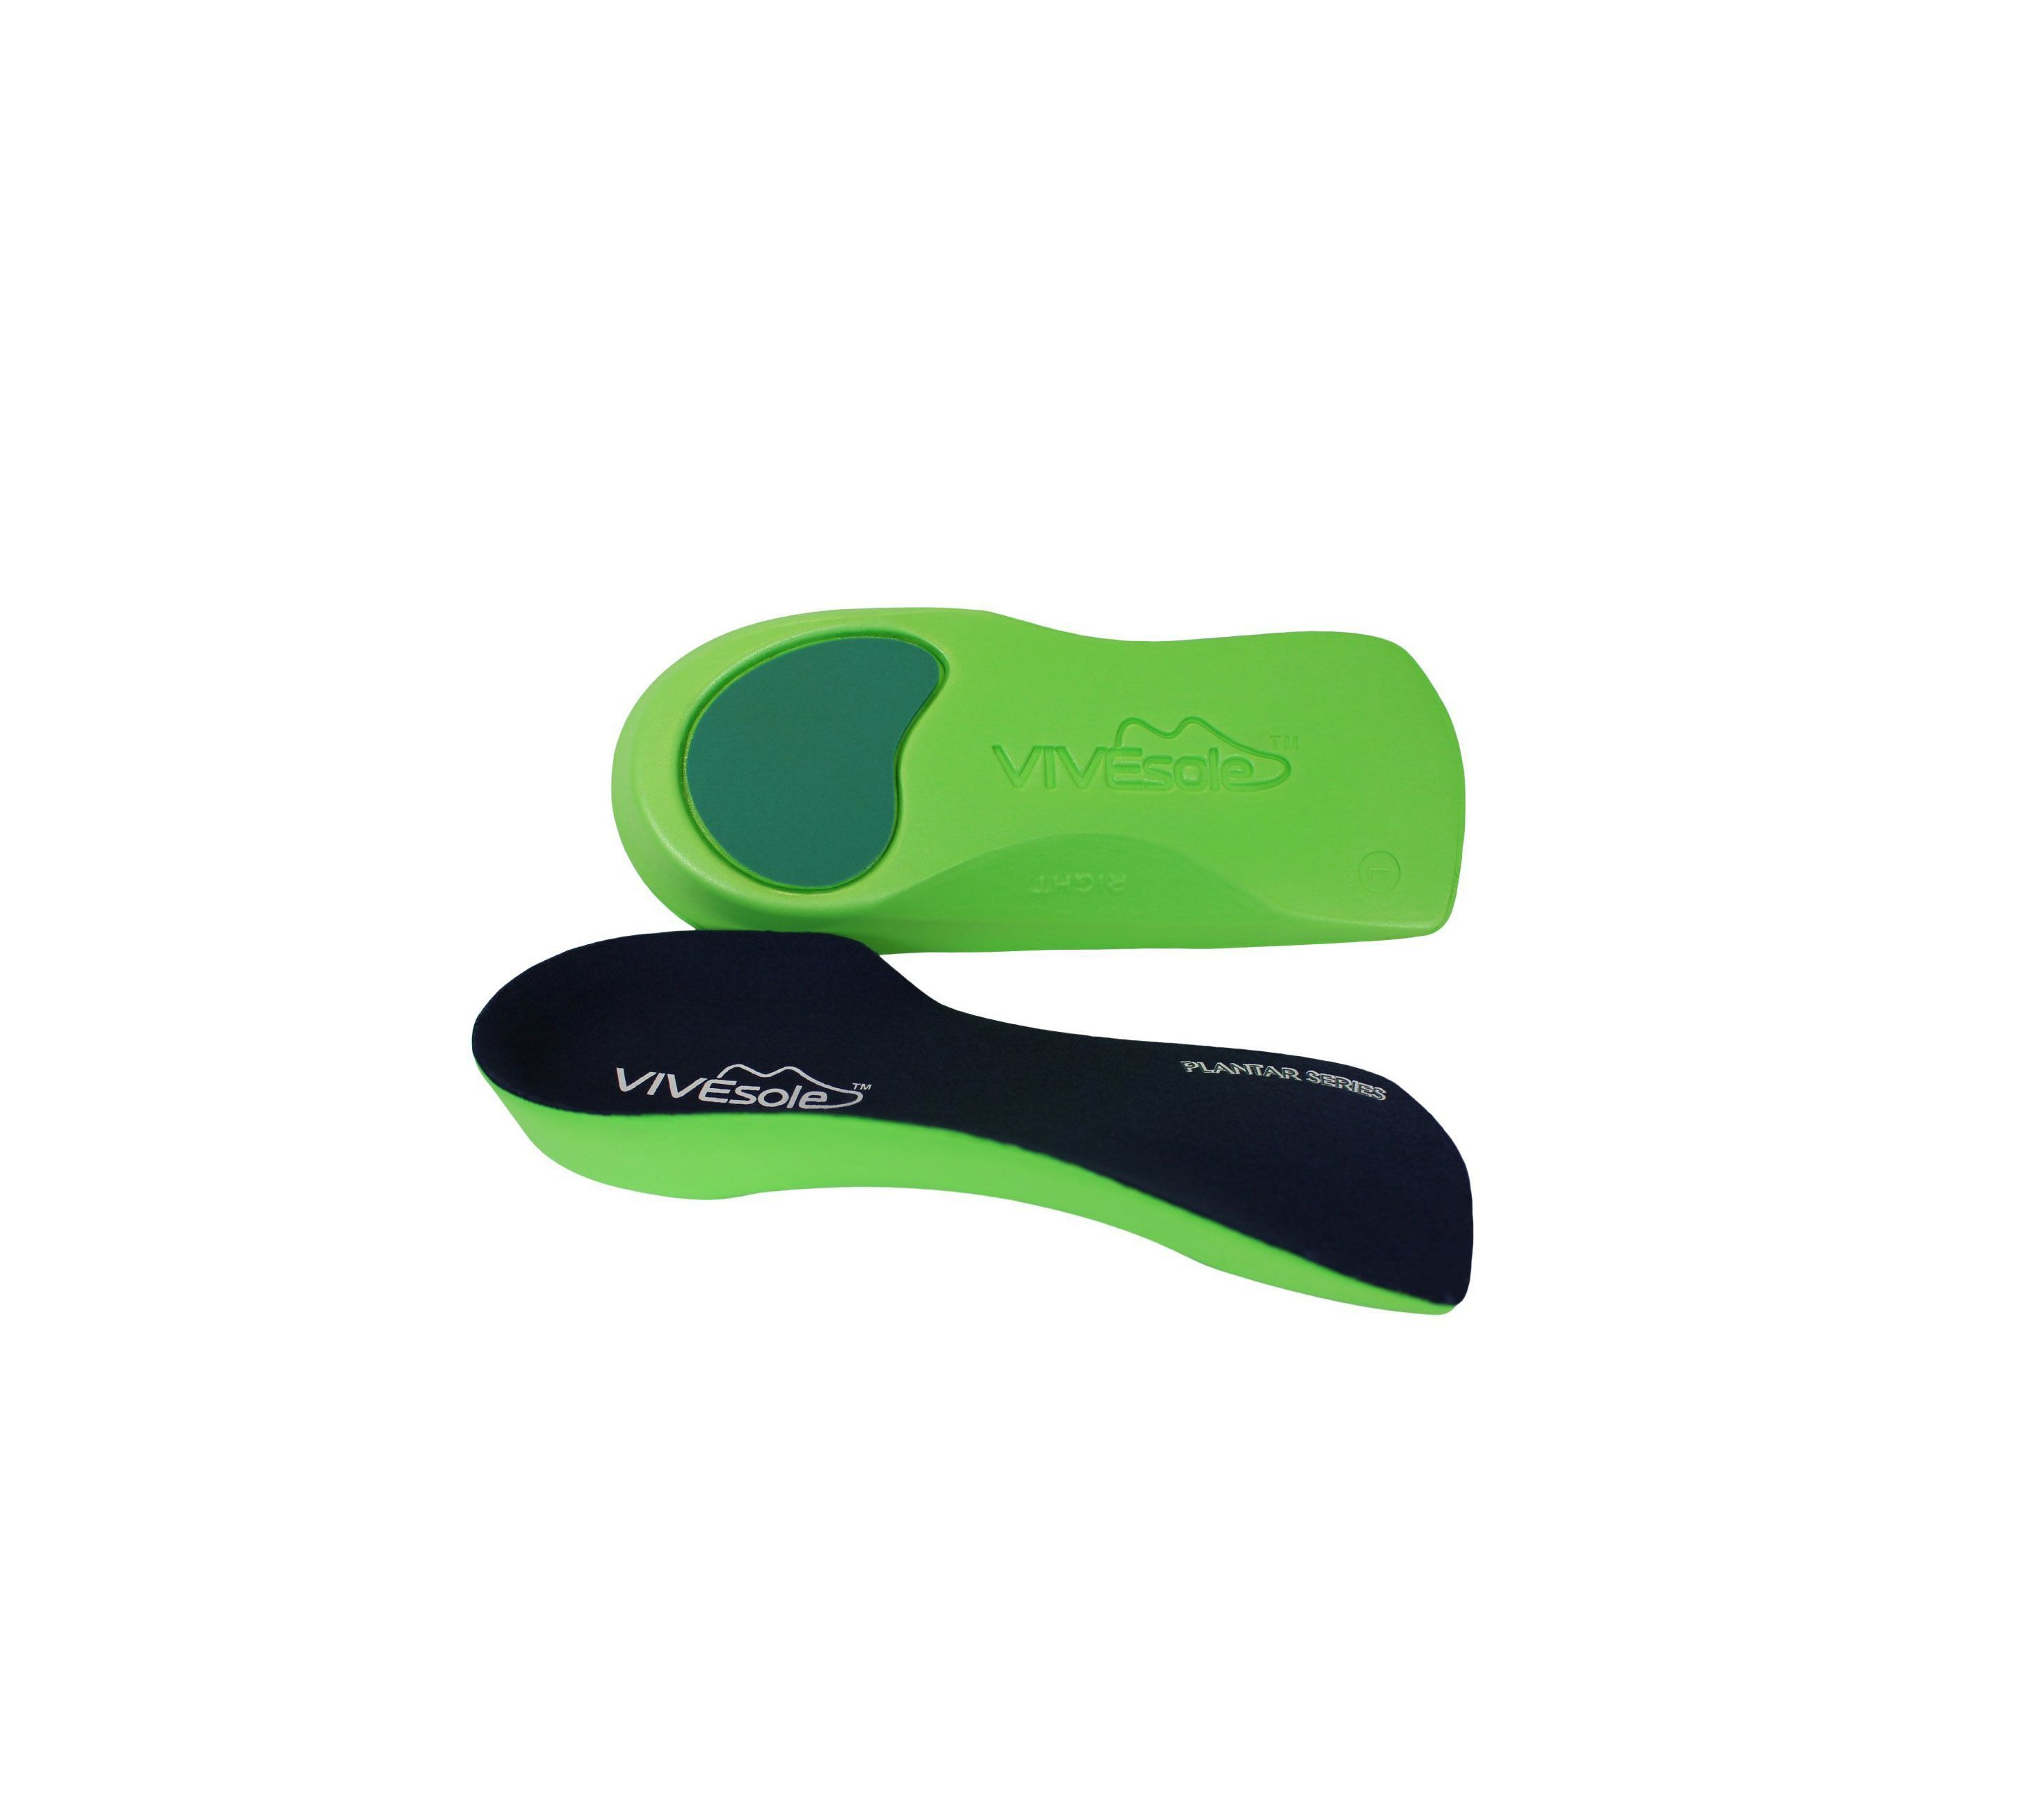 6 Plantar Fasciitis Insoles That Could Finally Ease Your Foot Pain 6 Plantar Fasciitis Insoles That Could Finally Ease Your Foot Pain new pictures